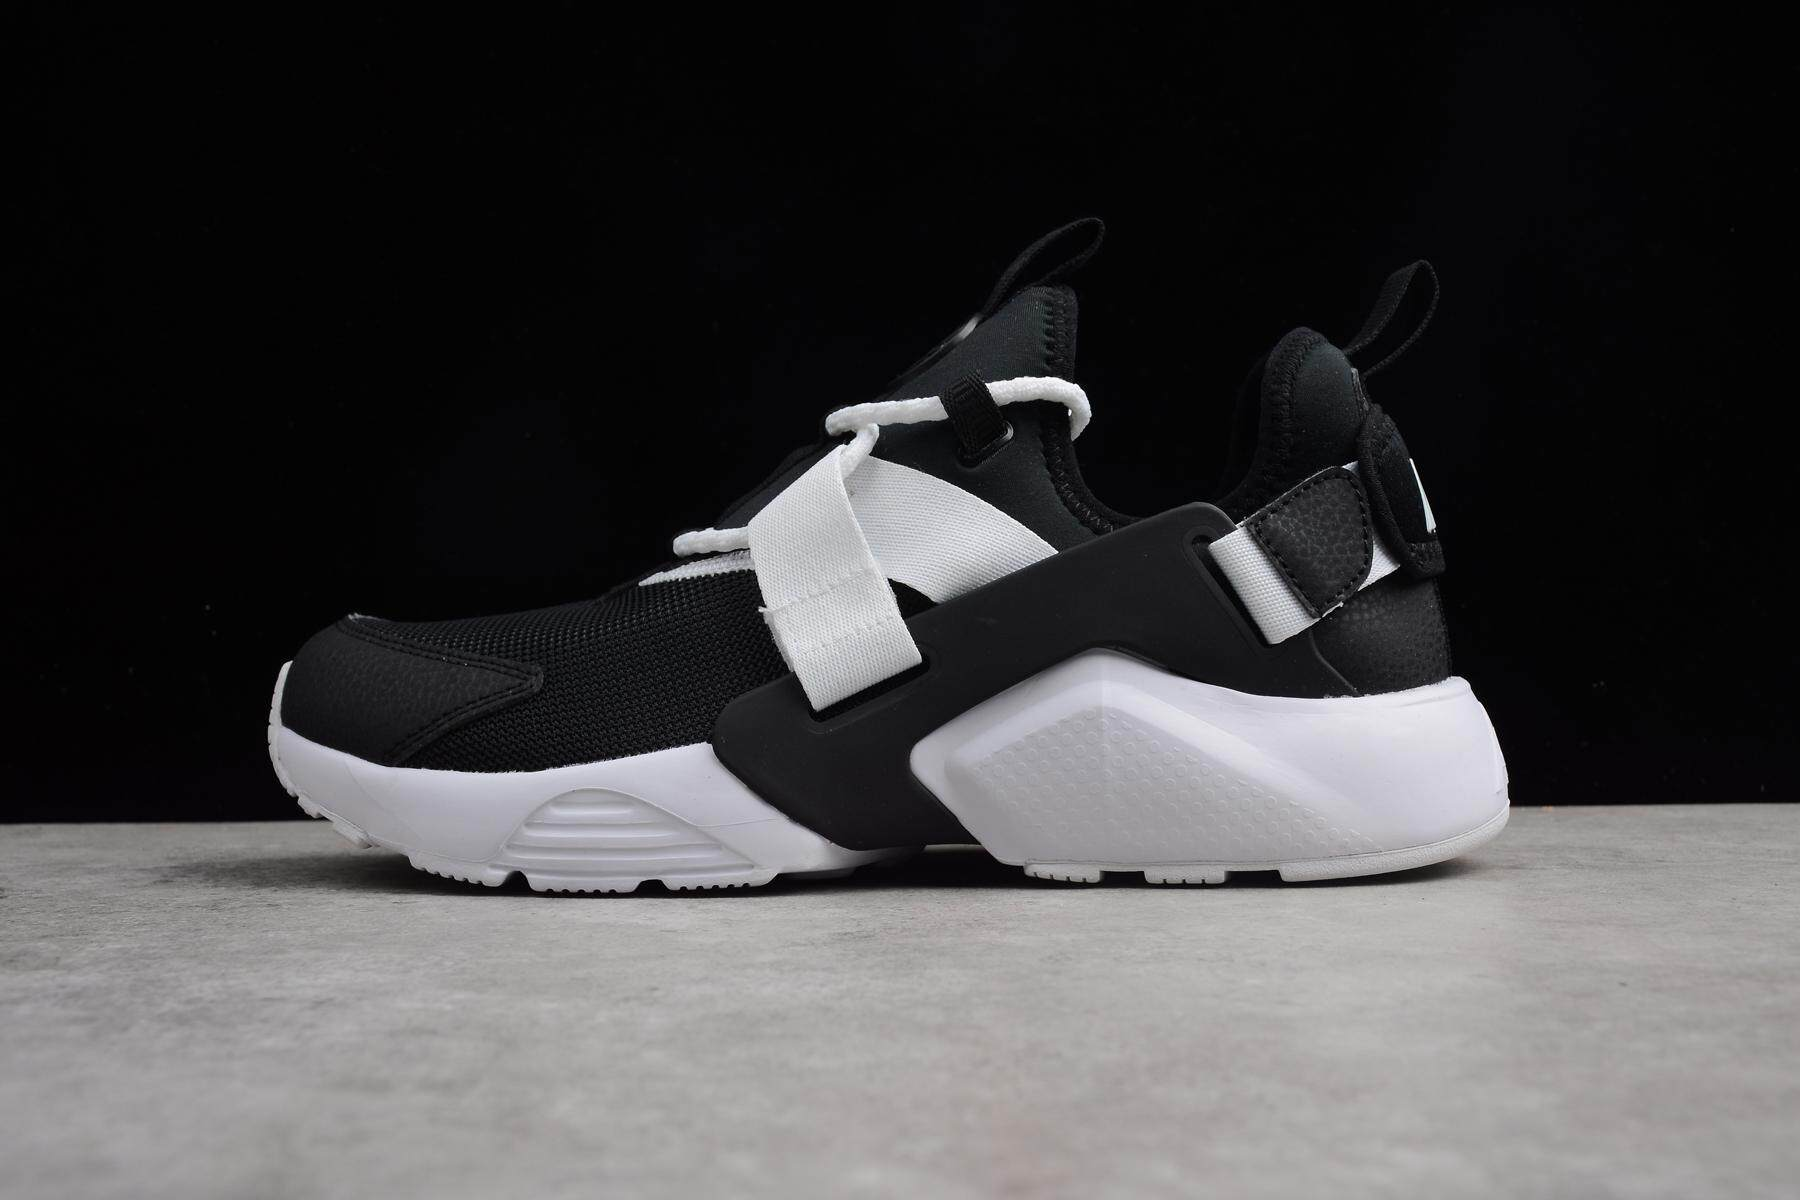 Nike Products Accessories At Best Price In Malaysia Lazada Sepatu Sneakers Pria Rc121 1111 Hot Sale Air Huarache City Low Mens Classic Running Shoes Comfortable Sport